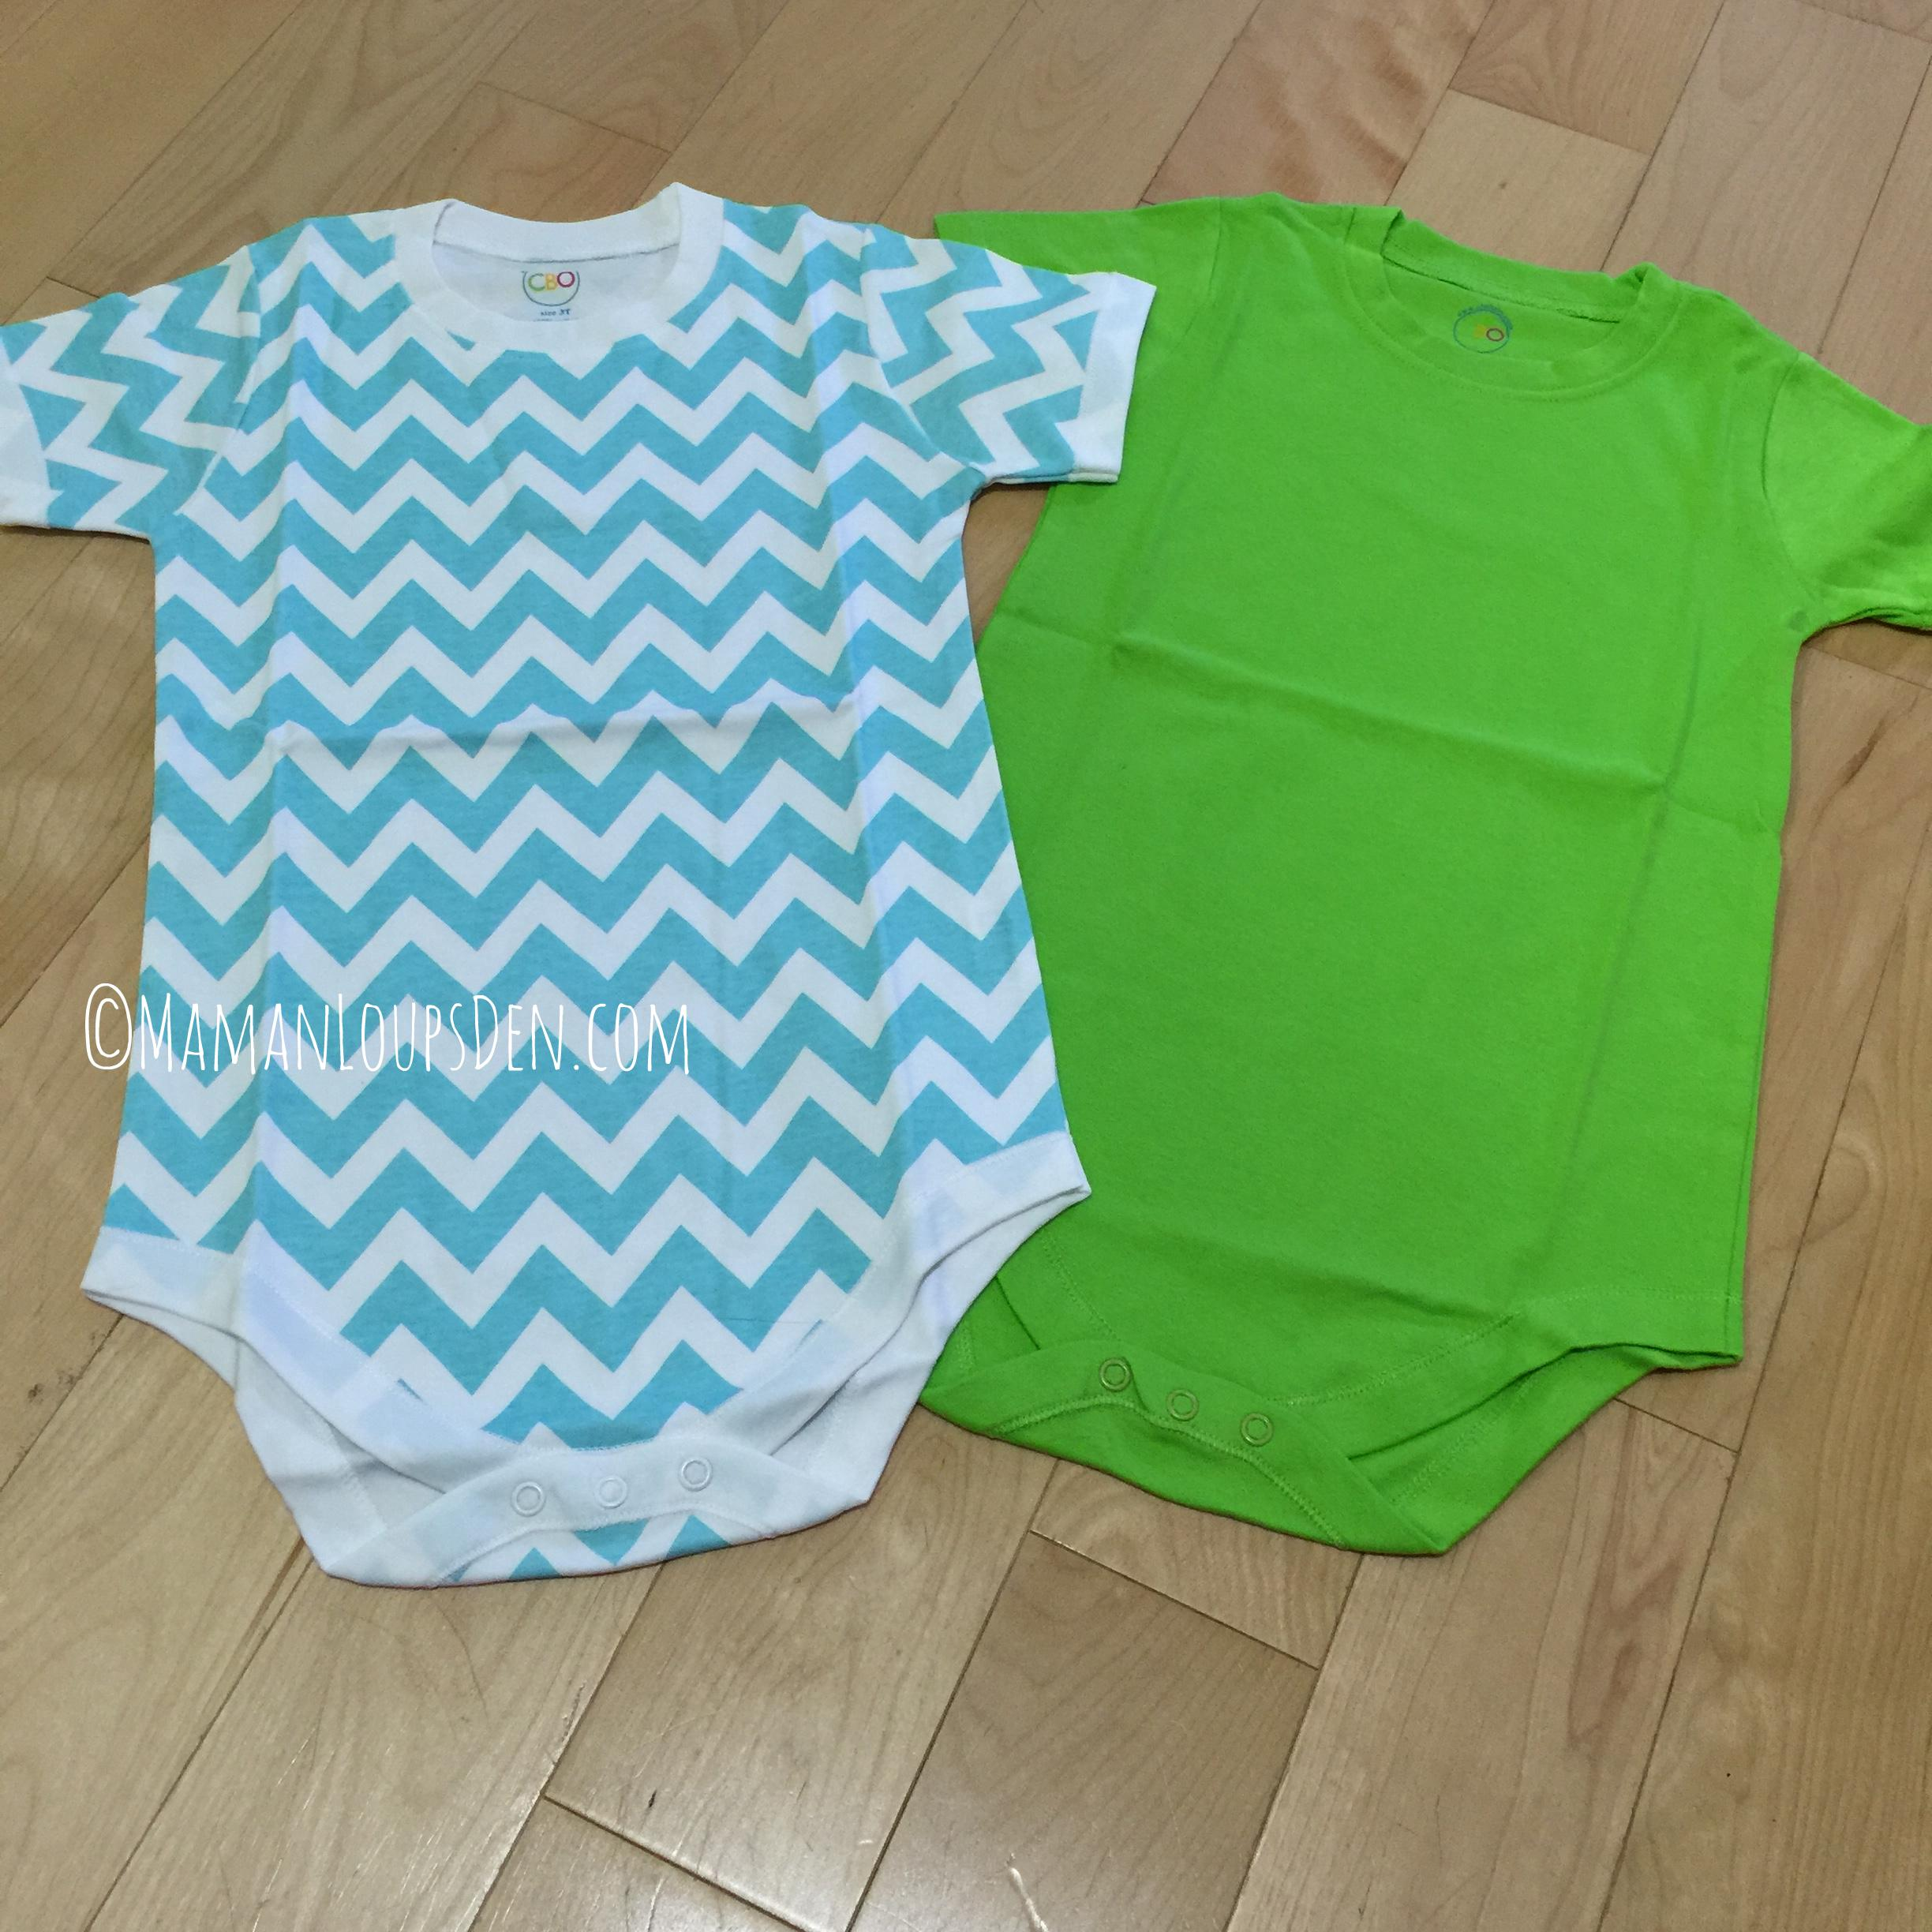 matches. ($ - $) Find great deals on the latest styles of Toddler 3t onesies. Compare prices & save money on Infant Bodysuits.